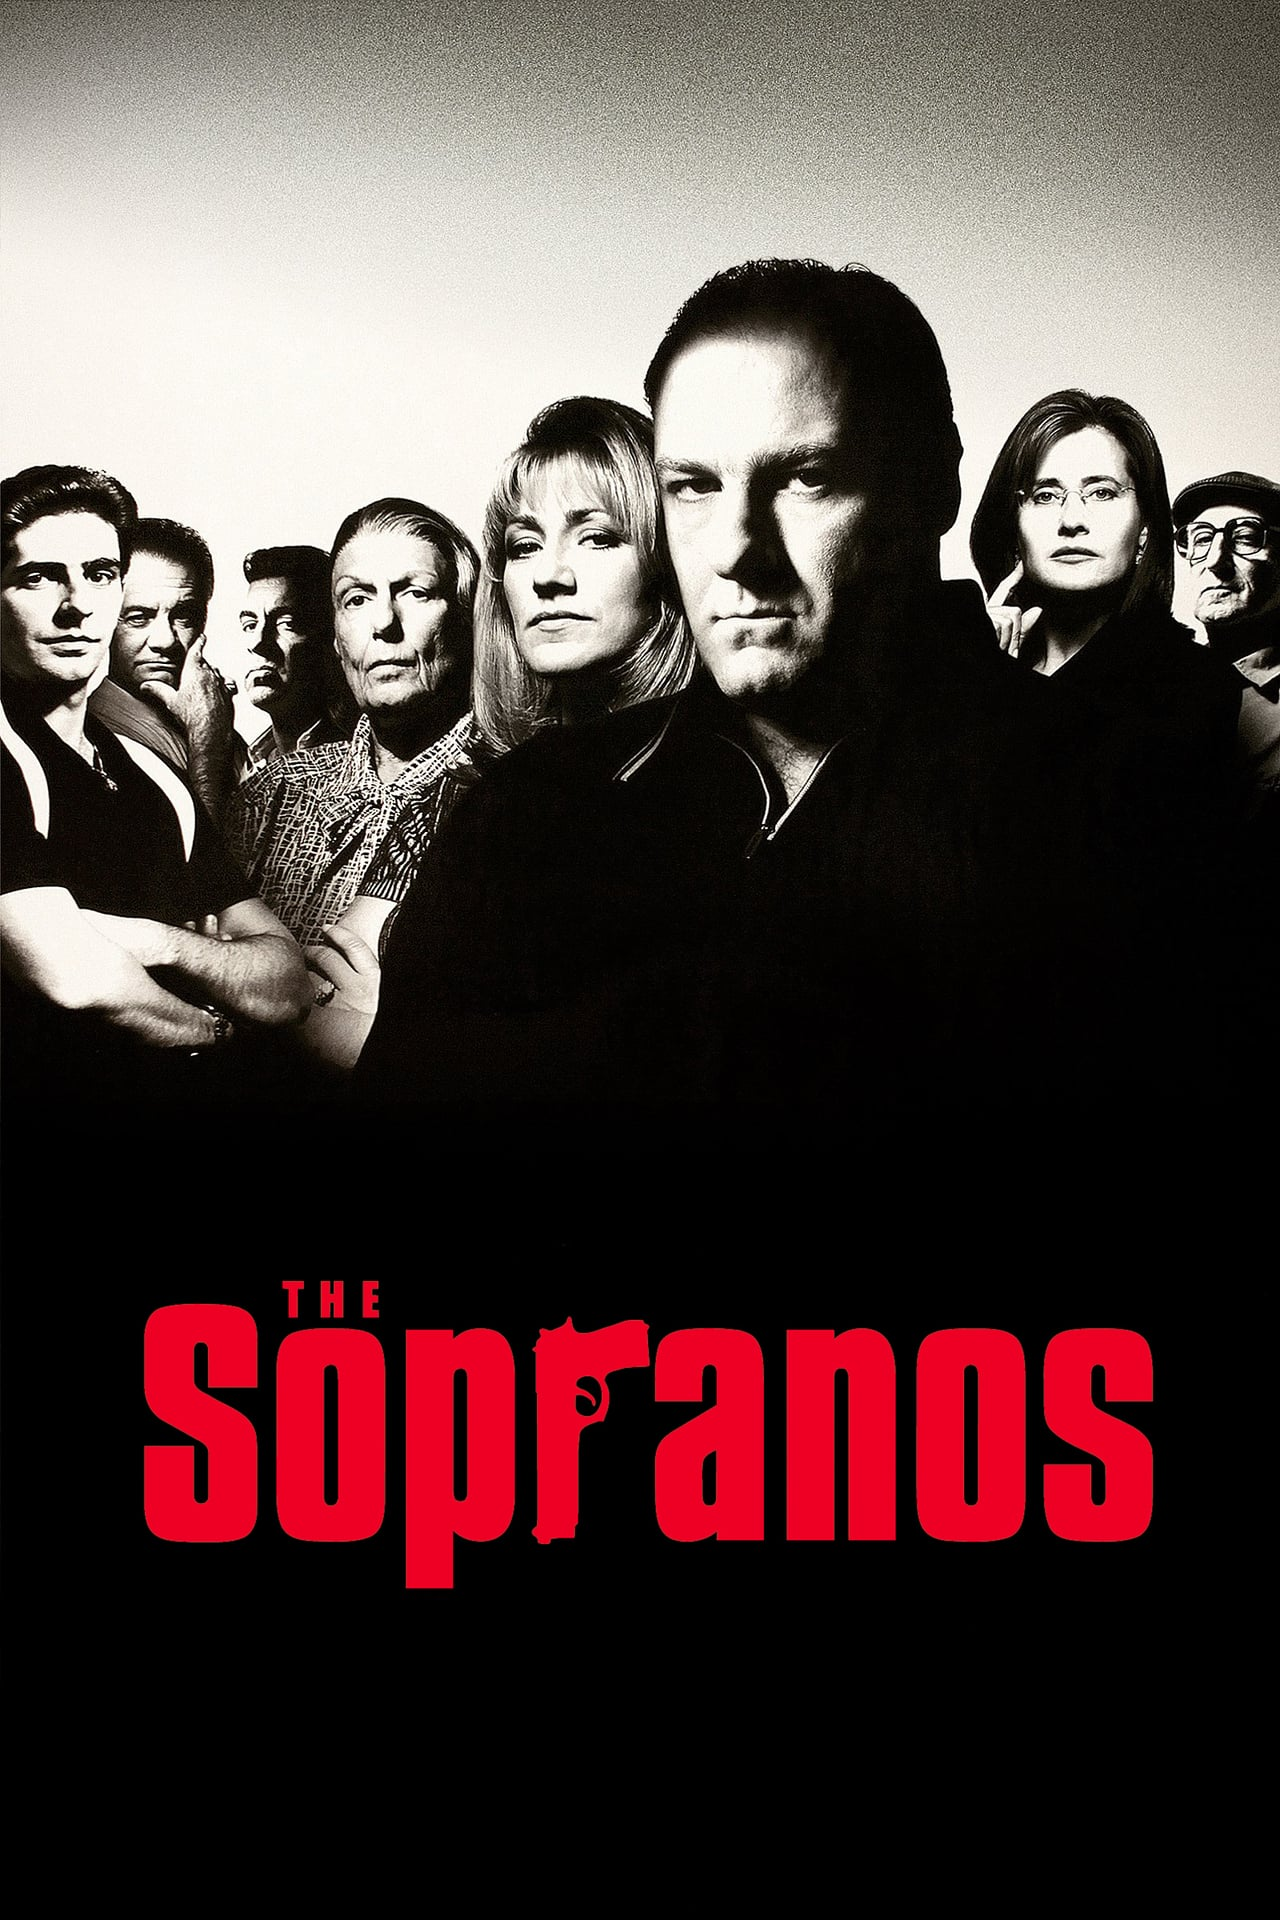 The Sopranos (season 3)